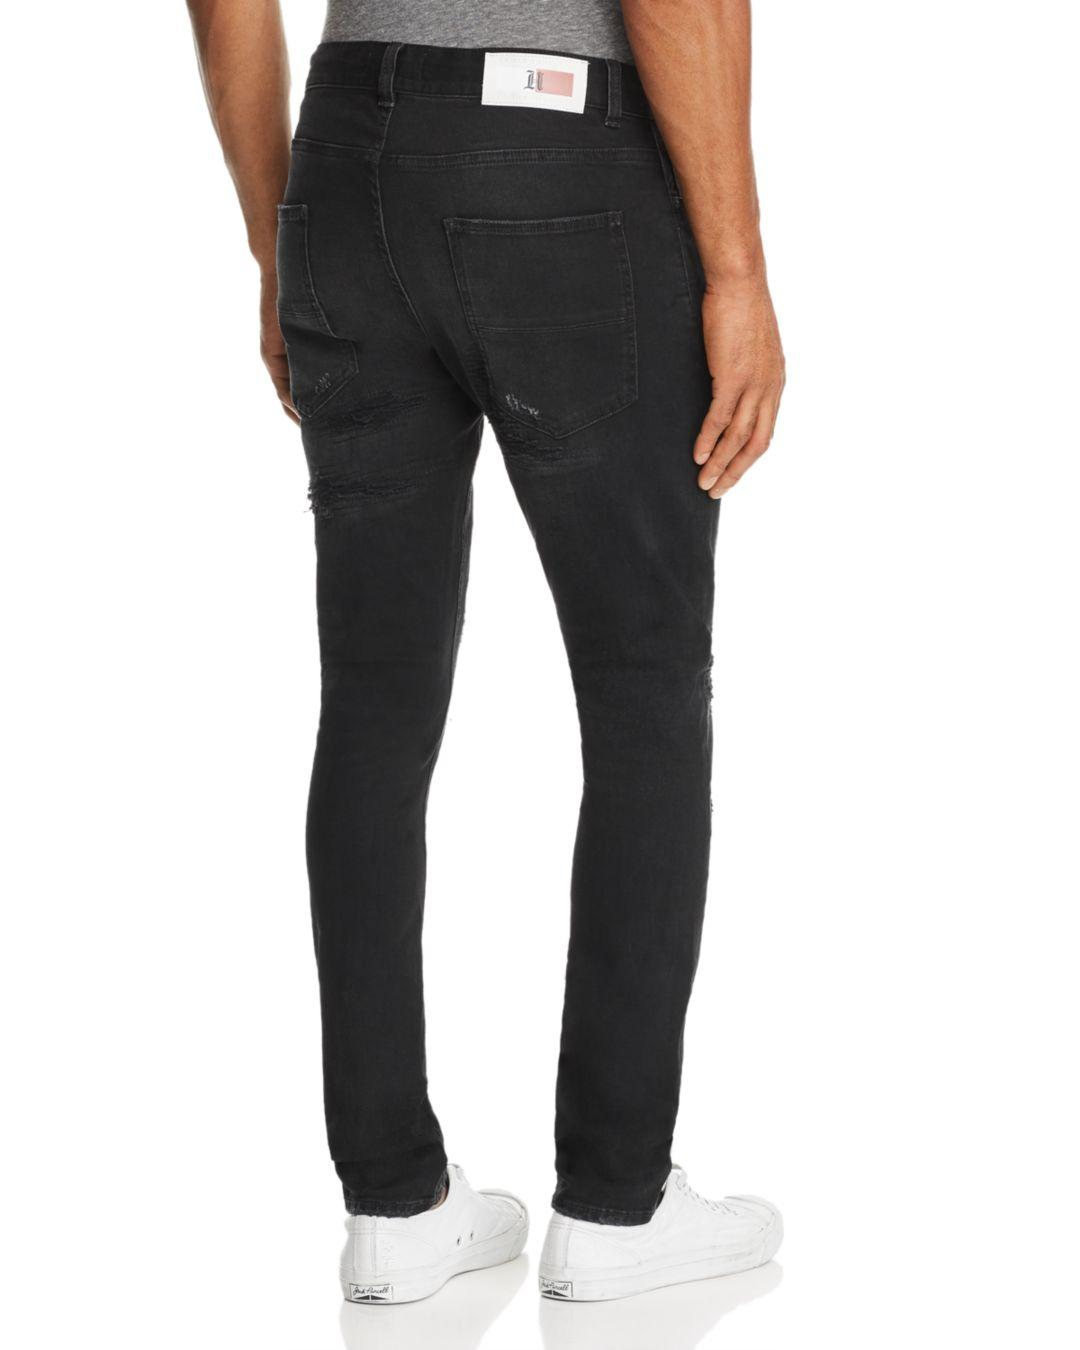 1f513bdc Tommy Hilfiger X Lewis Hamilton Skinny Fit Jeans In Black in Black for Men  - Lyst